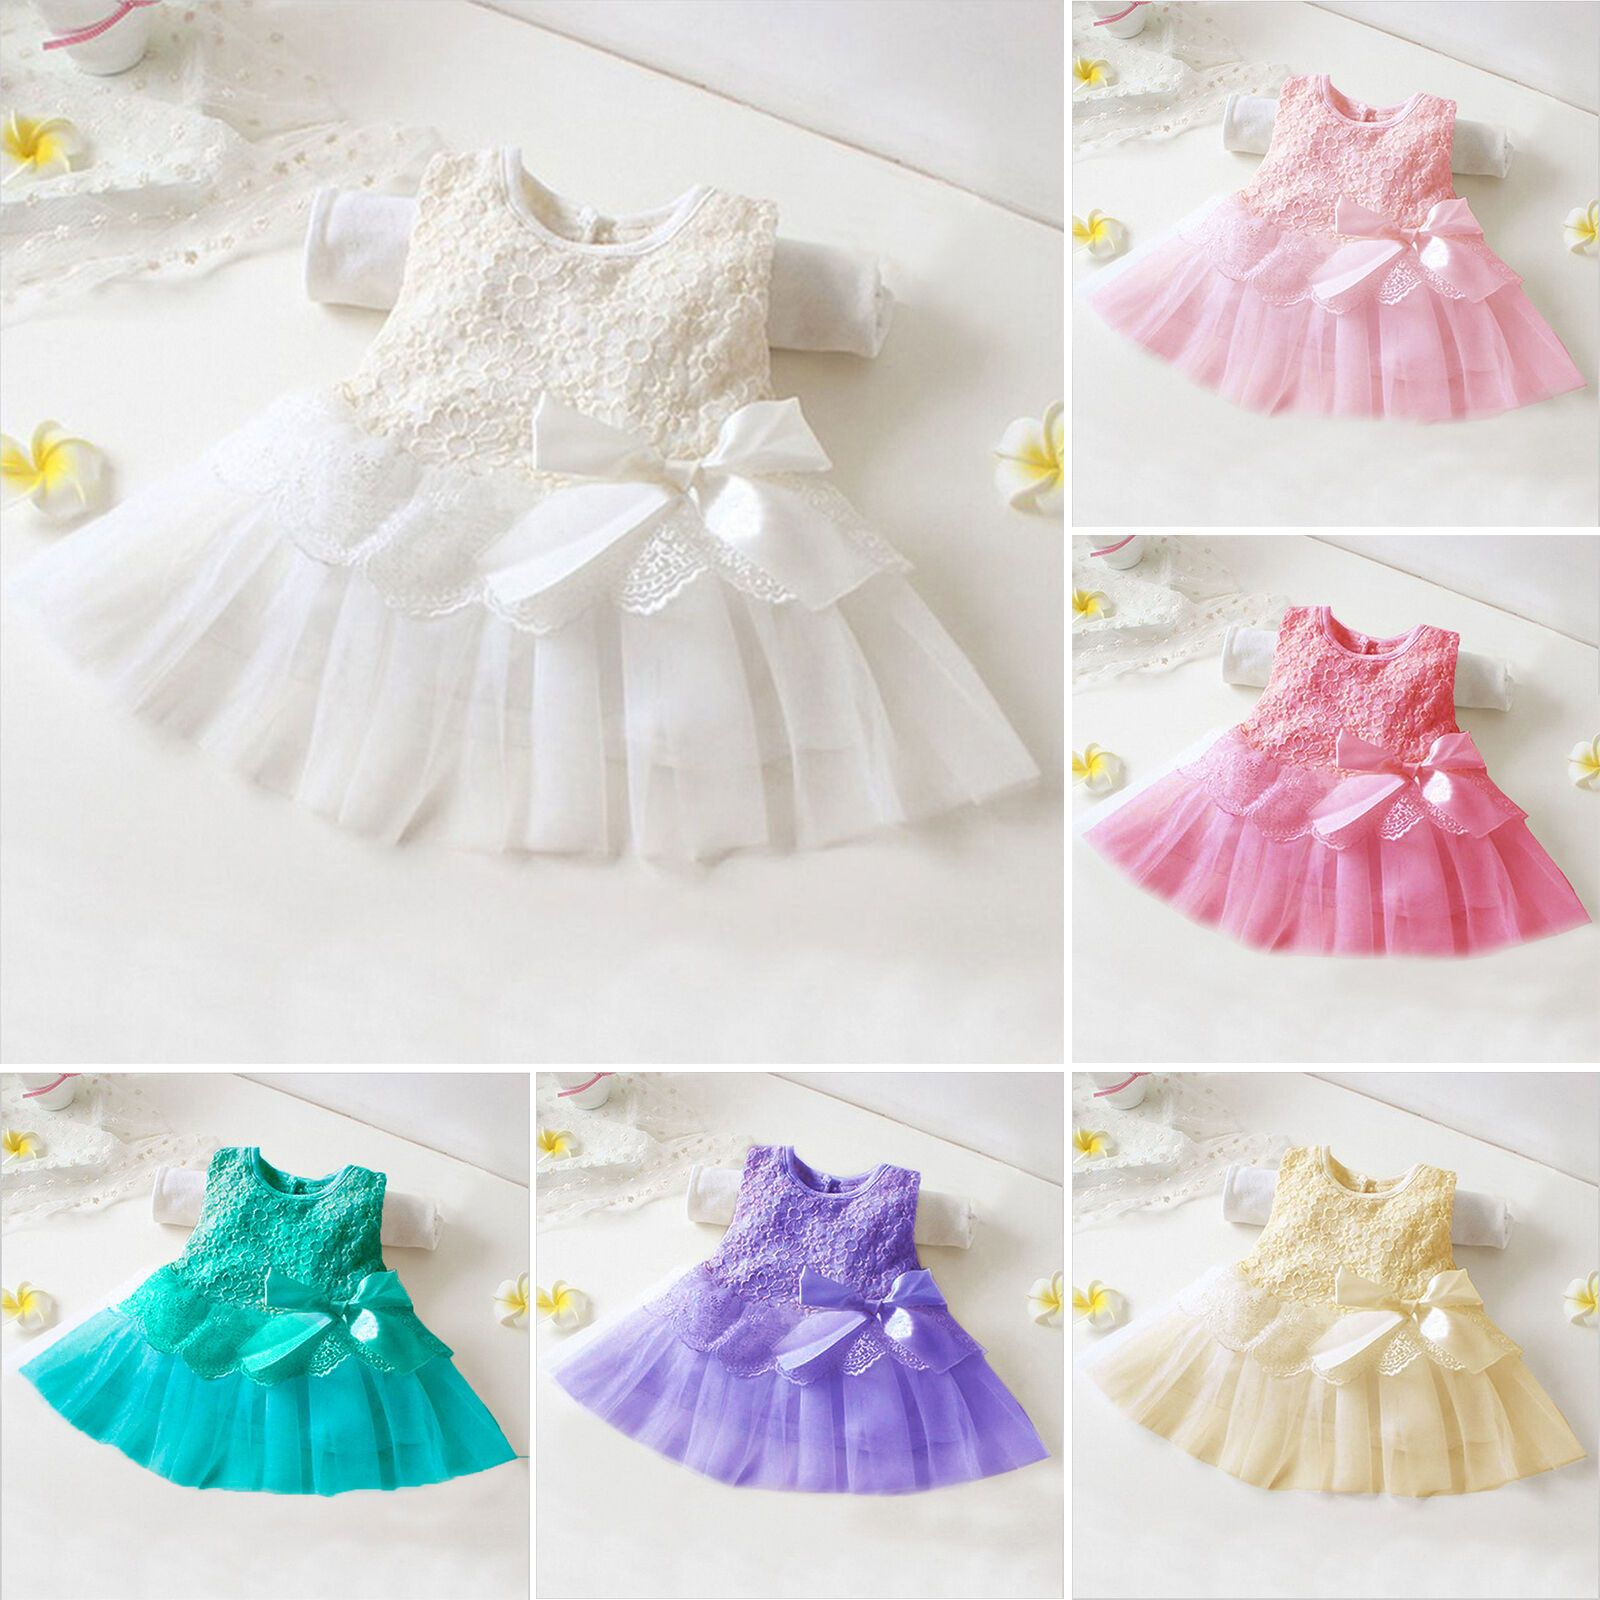 Girls Baby Princess Floral Dress Kids Party Pageant Lace Bow Tulle Tutu Dresses